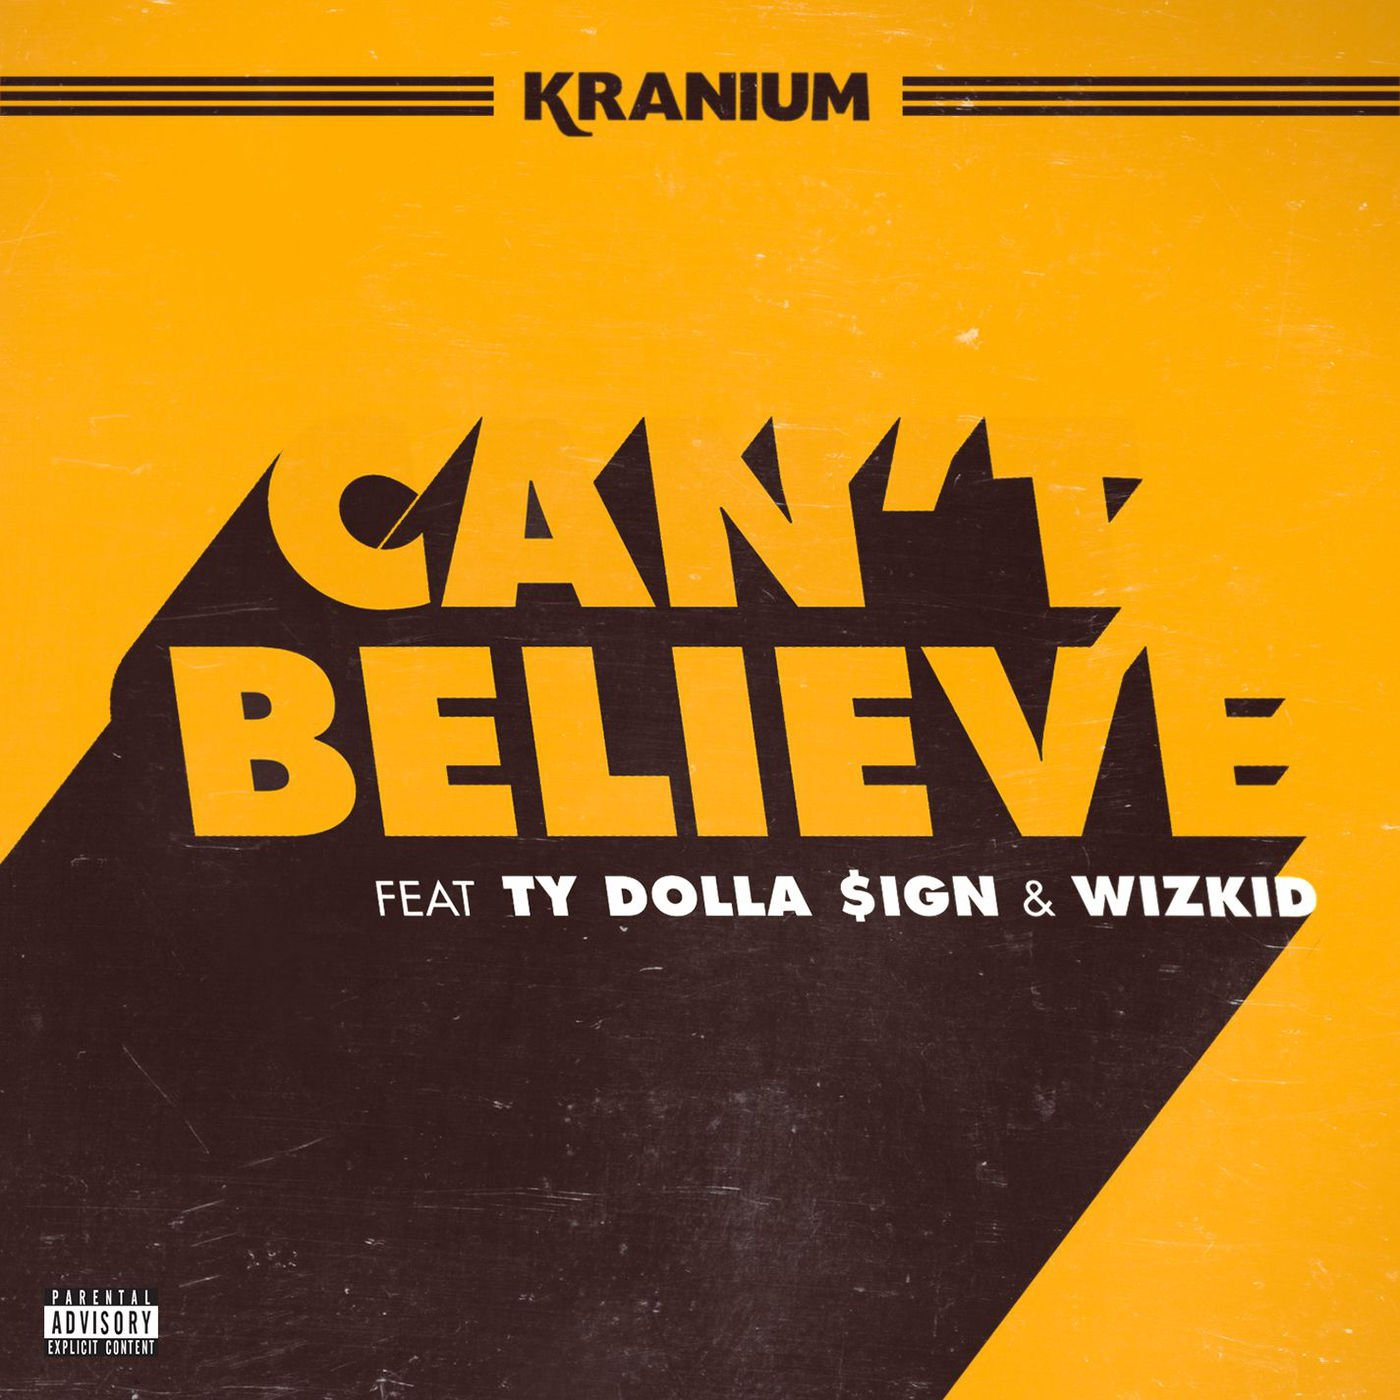 New Music: @therealkranium Feat. @tydollasign & @wizkidayo 'Can't Believe' https://t.co/kqeyQgrA82 https://t.co/eZHzVAC84Z